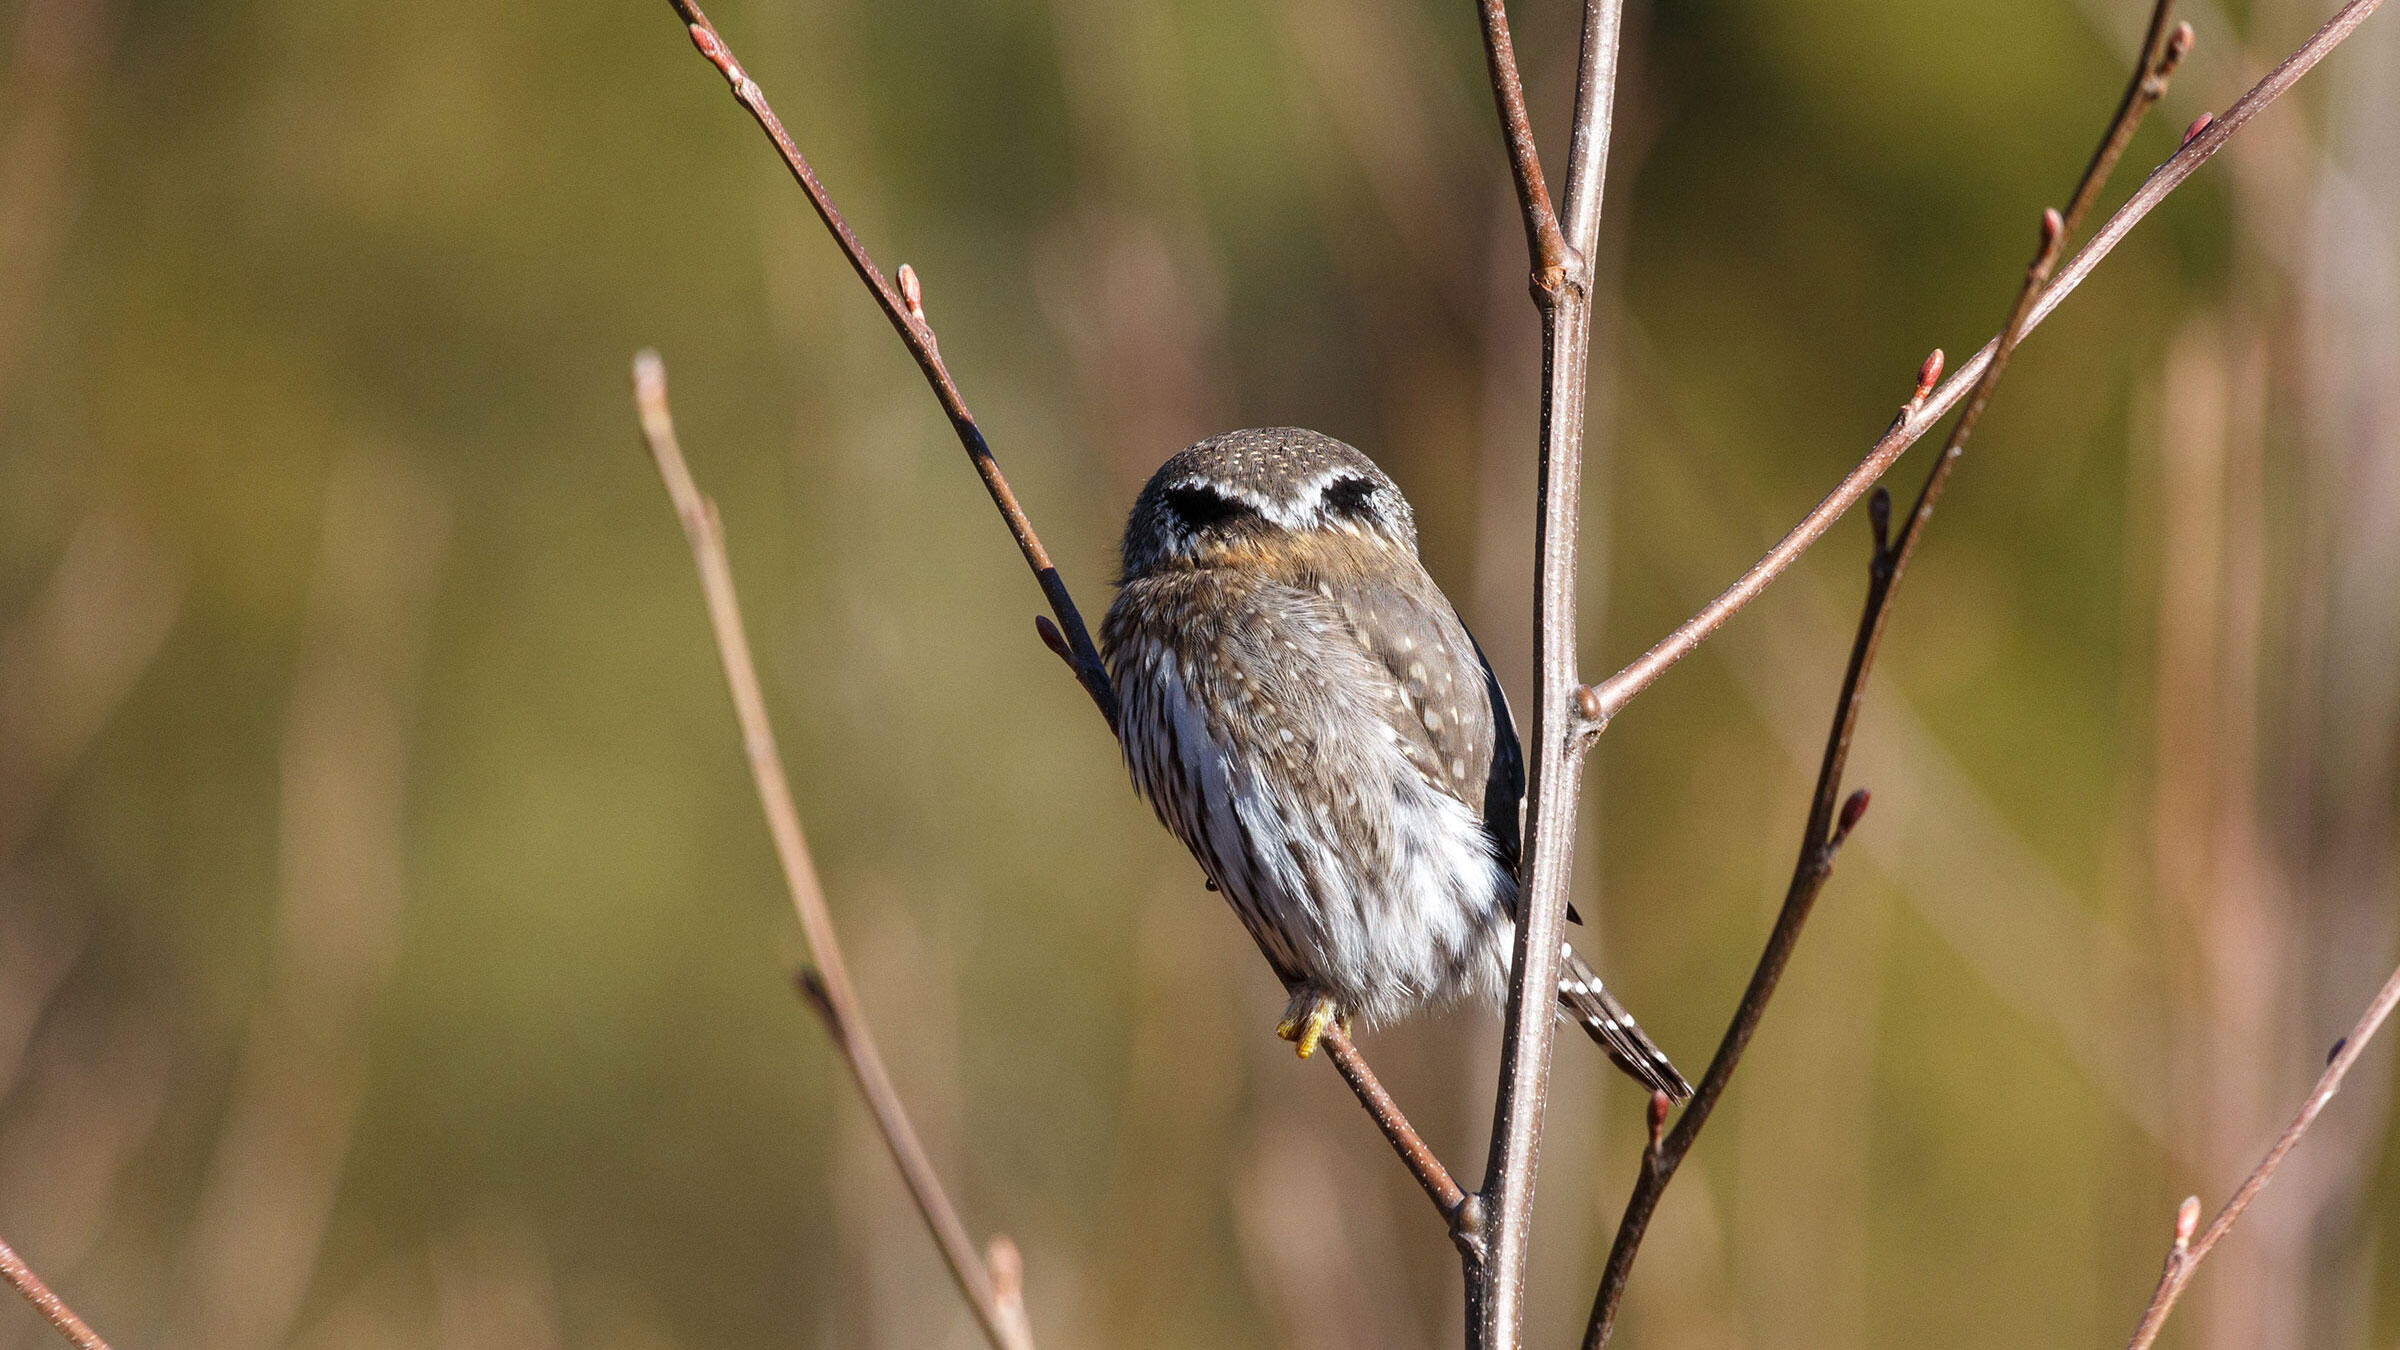 Northern Pygmy-Owls, like this one, are ruthless songbird hunters. The owls cache any extra food in tree cavities or hang it from thorns to save for later. This behavior seems fitting of a bird with such unnerving fake eyes. Feng Yu/Alamy